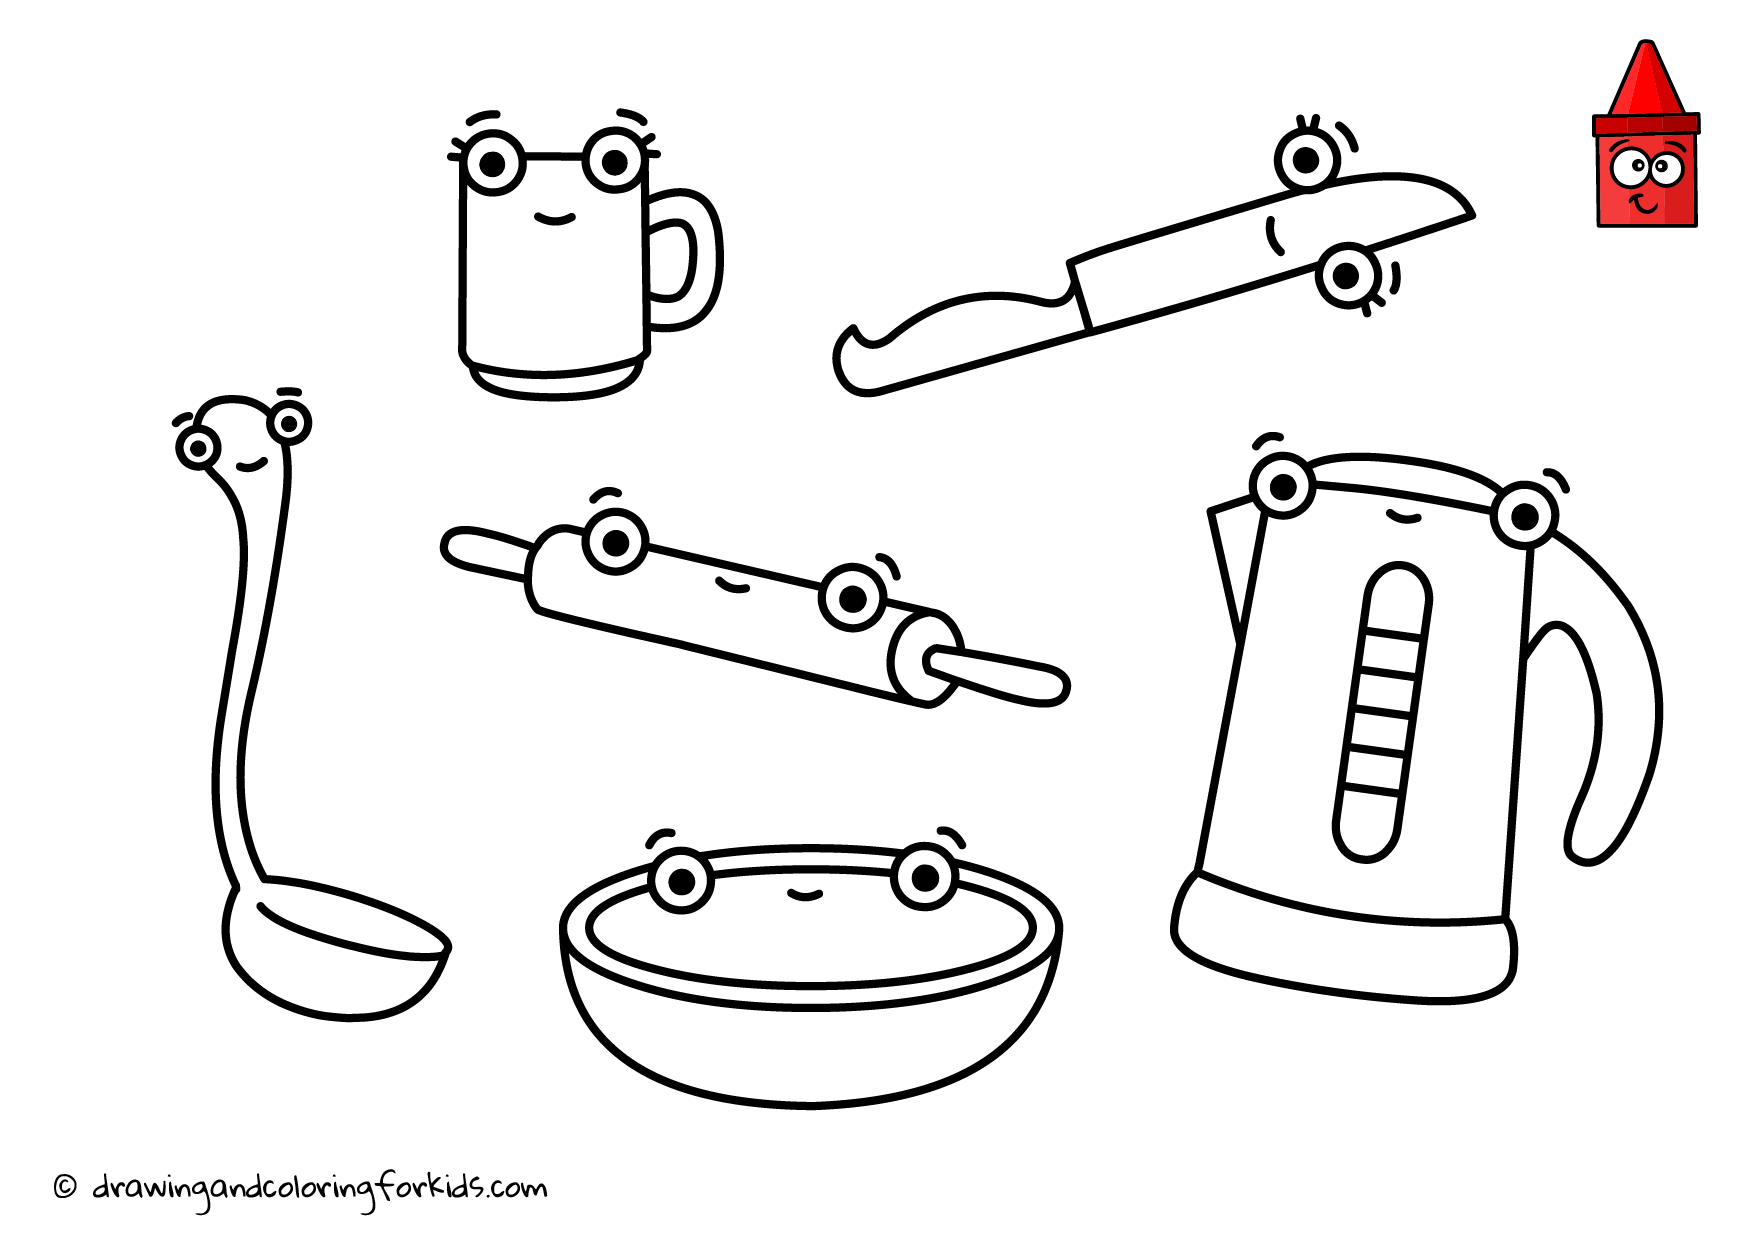 Drawing Kitchen Utensils Coloring Page Kitchen Kitchen Utensils For Kids Coloring Pages Coloring Pages For Kids Coloring For Kids